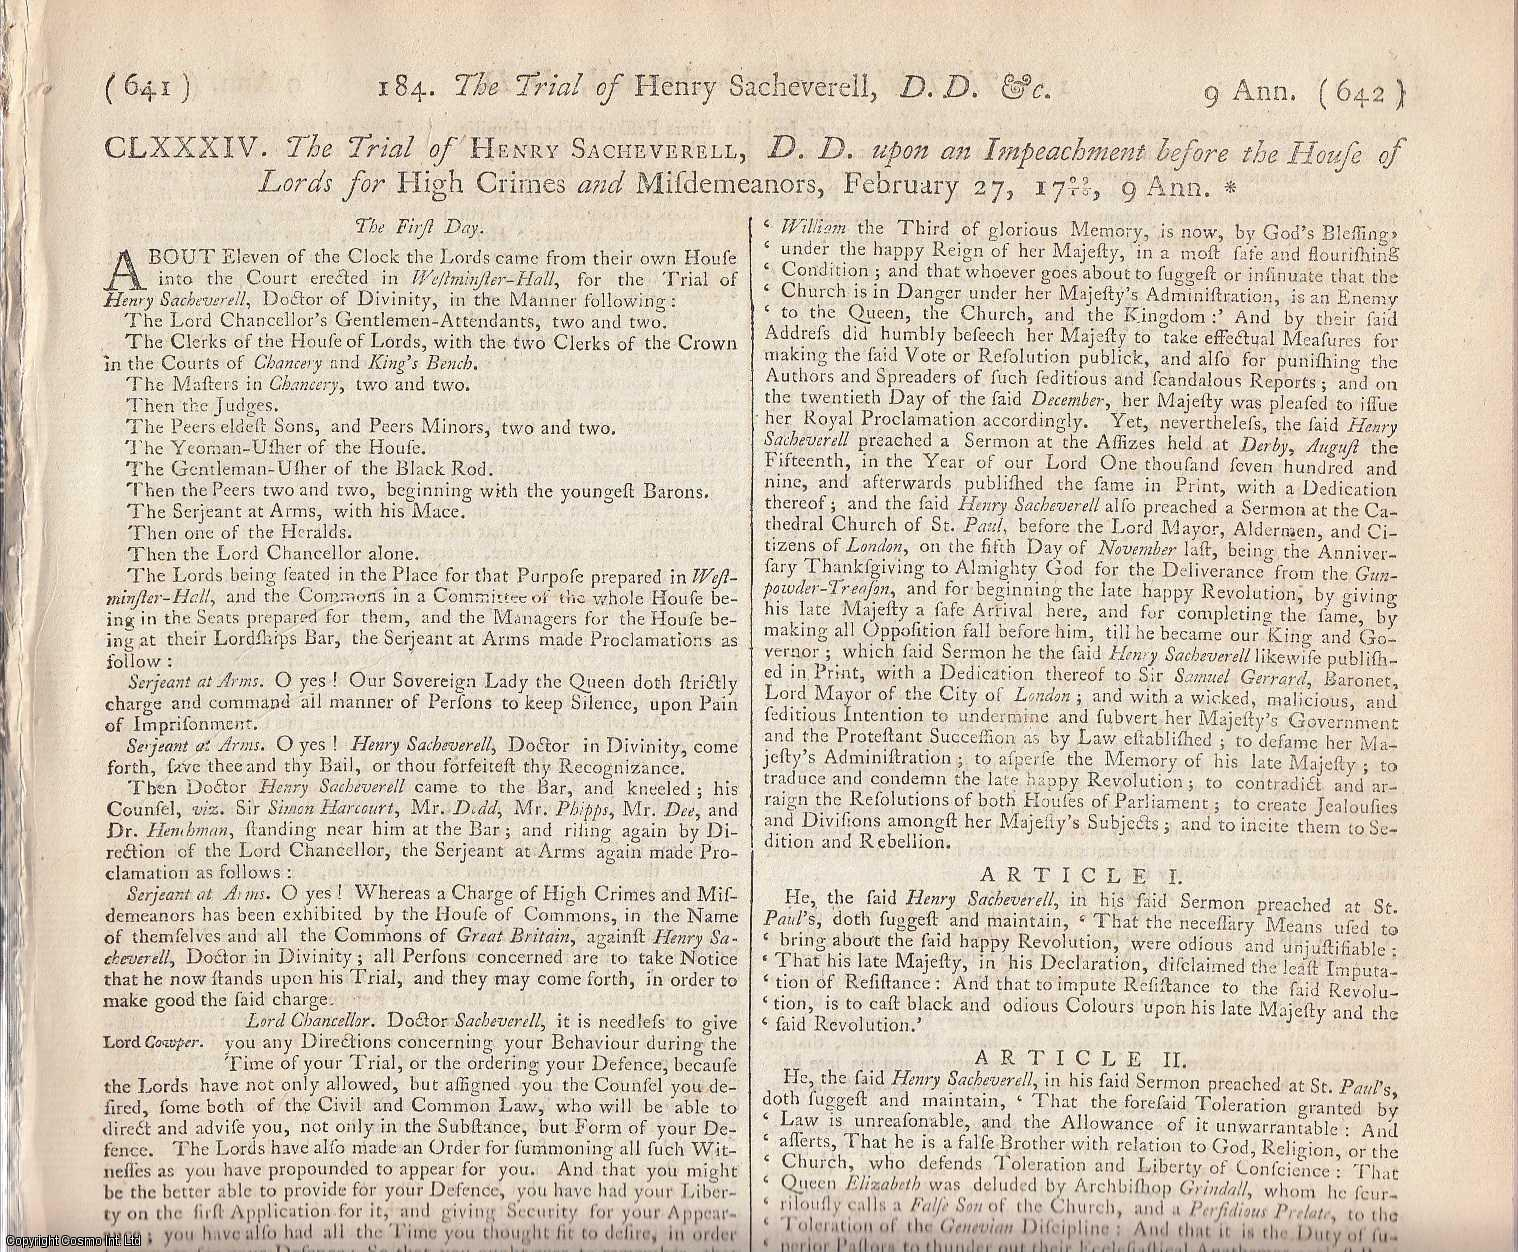 SACHEVERELL RIOTS.  The Trial of Henry Sacheverell DD, upon an Impeachment before the House of Lords for High Crimes and Misdemeanours, February 27, 1709., [Trial].